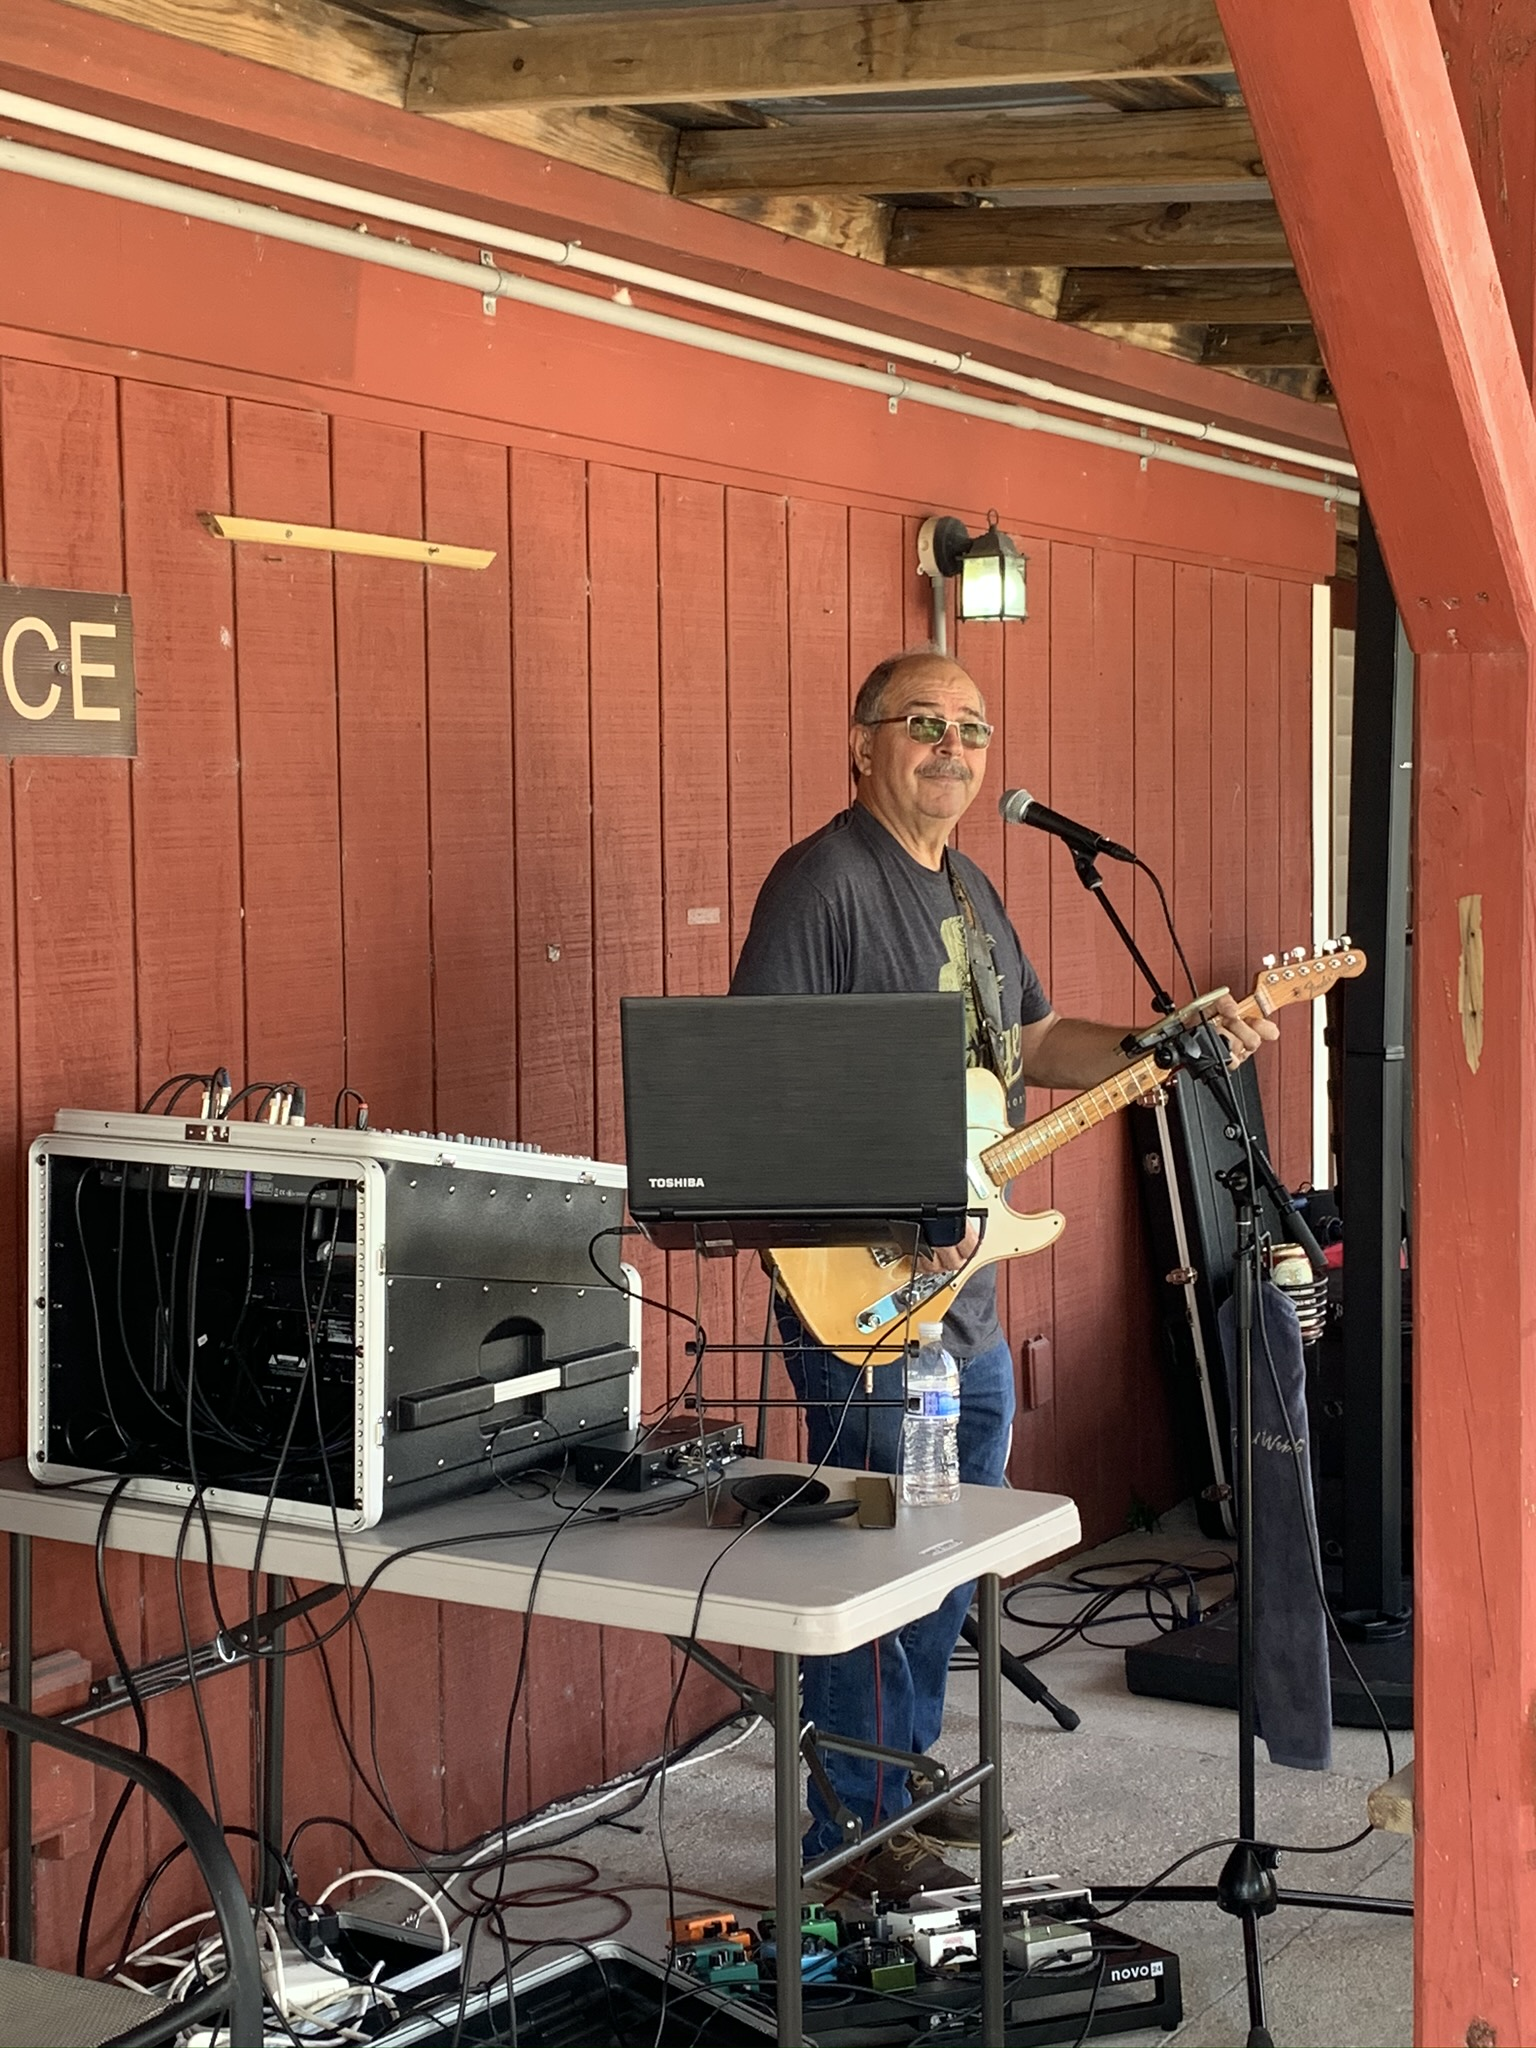 Konnie performing at Members' party 2020 at Gulf Coast Clays